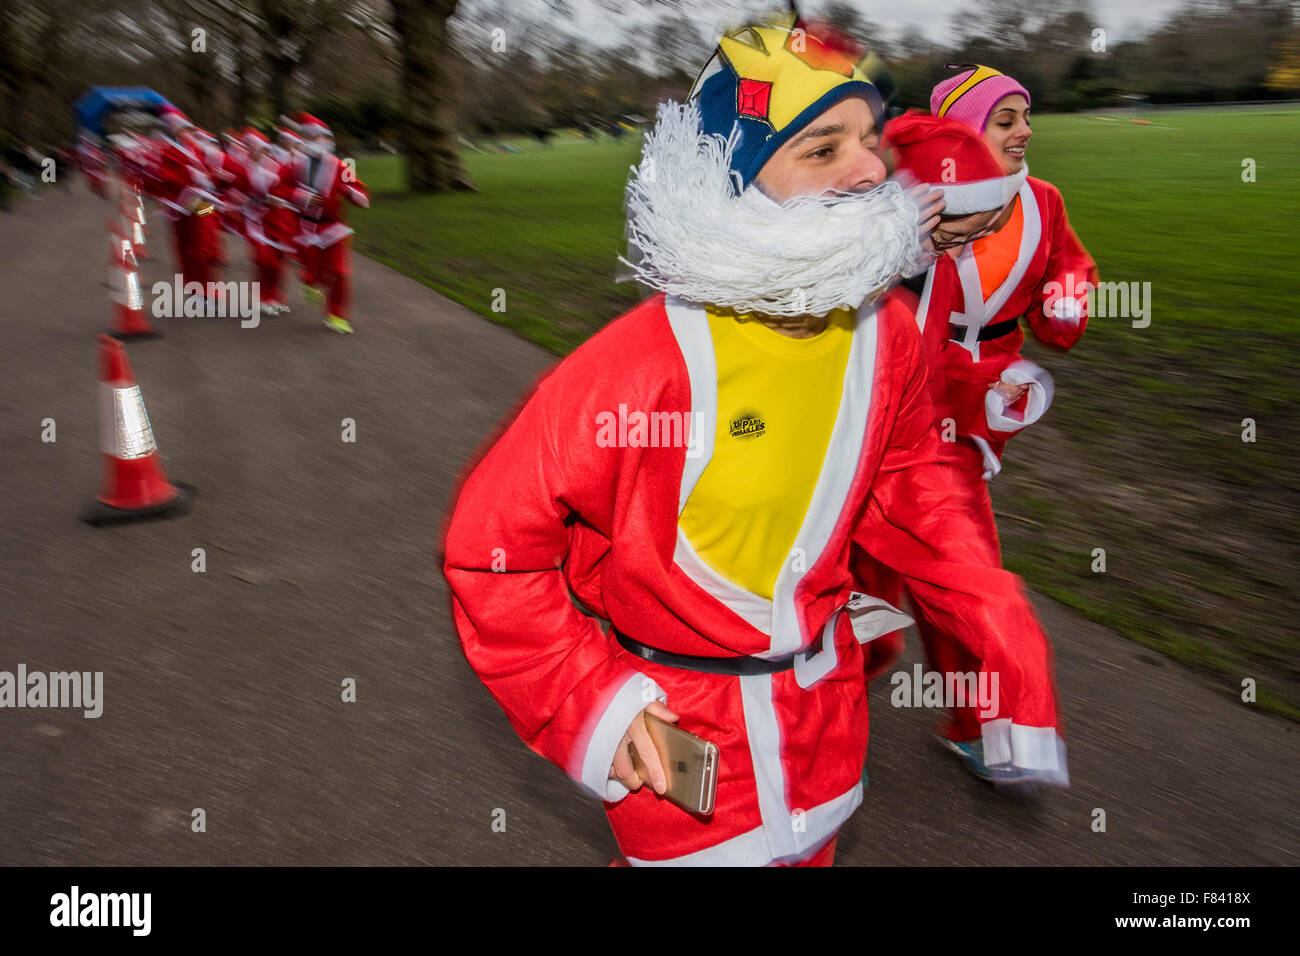 London, UK. 05th Dec, 2015. The London Santa Run 2015 in Battersea Park - 2,000 Santa's take part in an annual - Stock Image